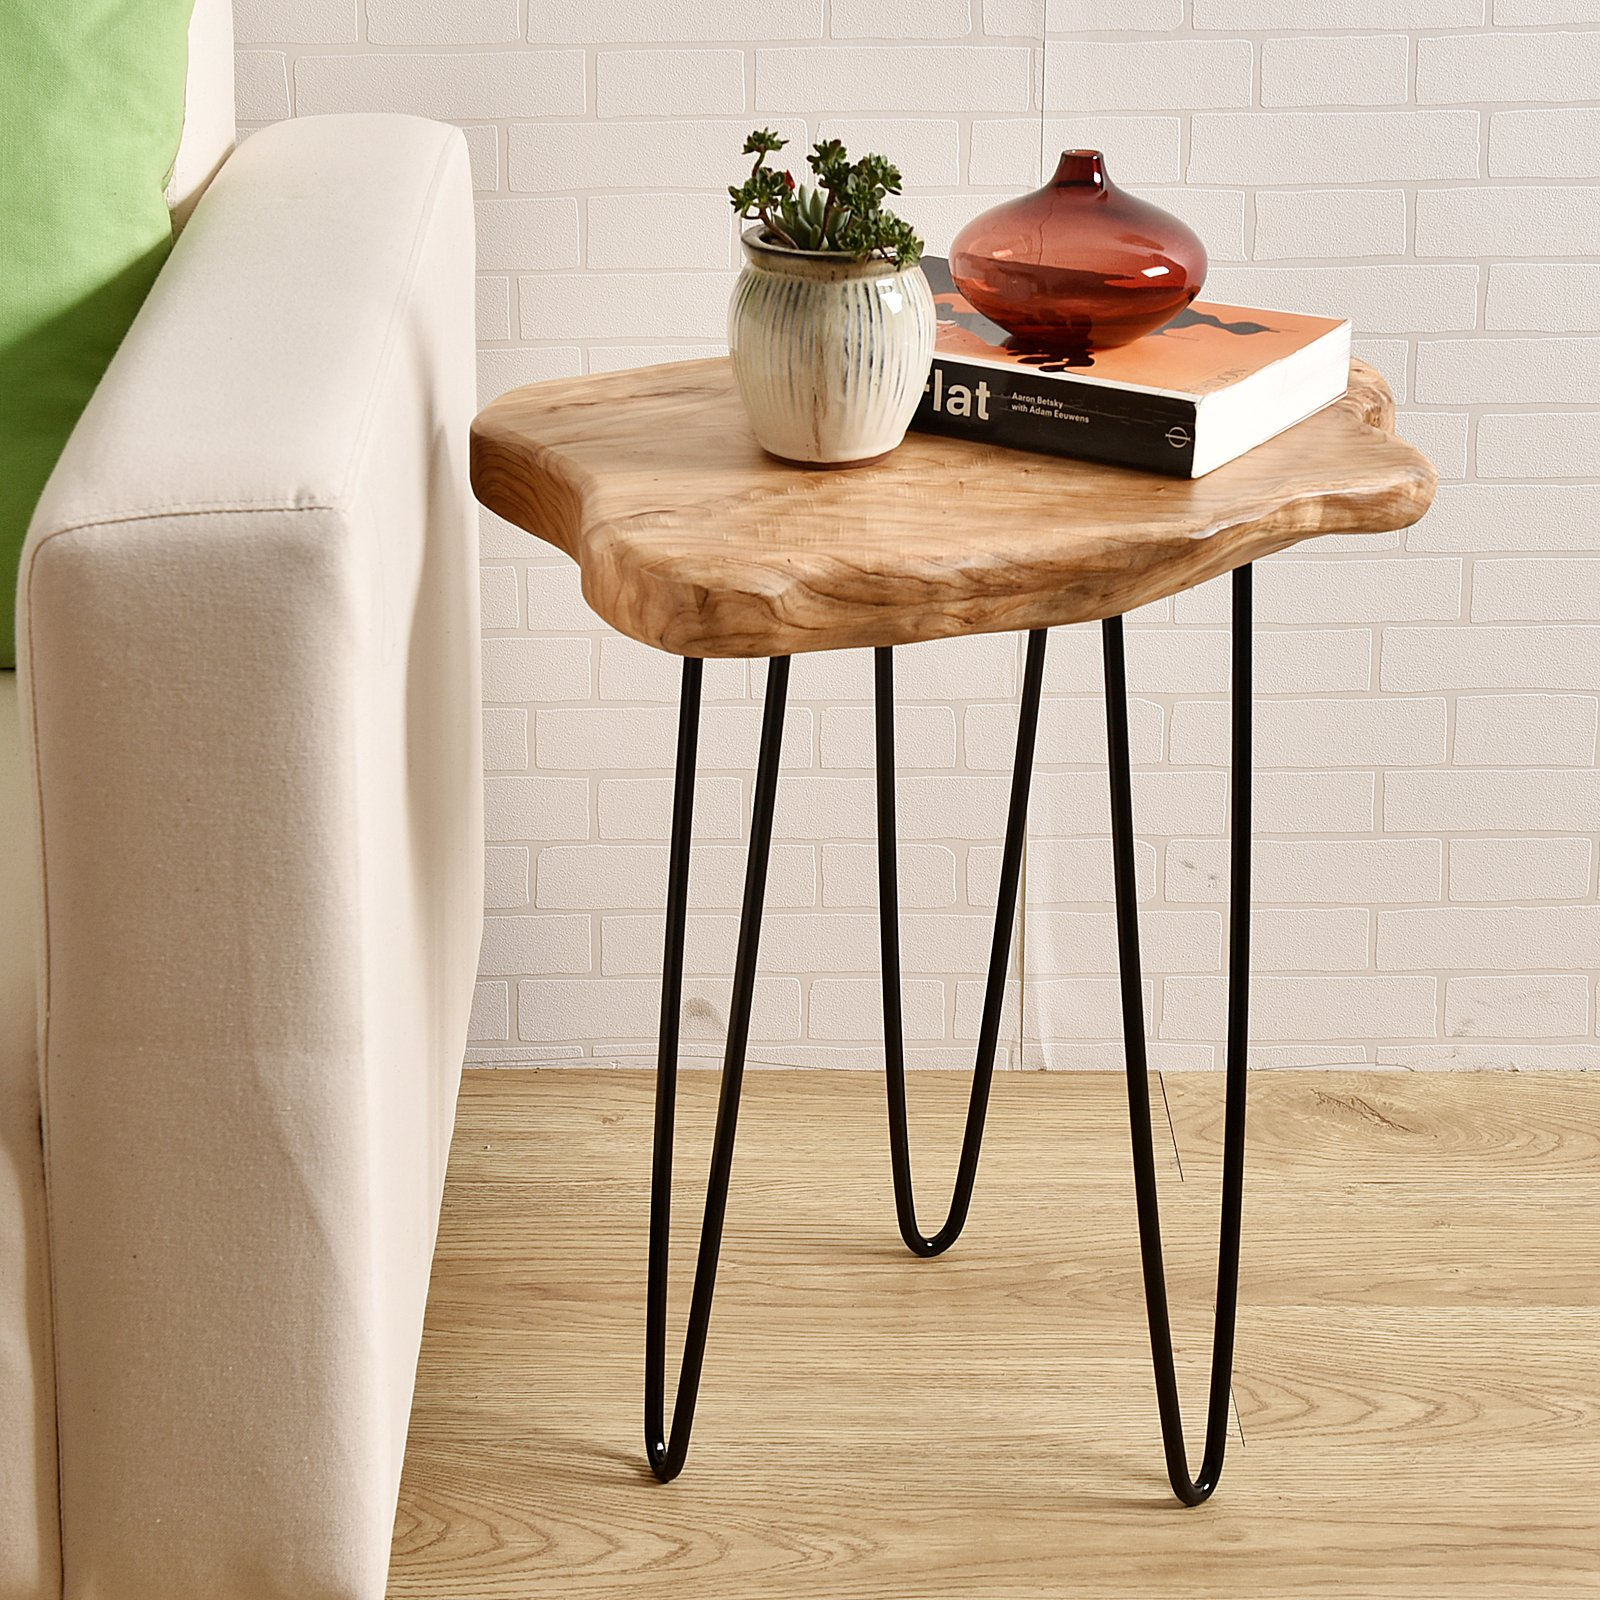 WELLAND Natural Edge End Table, Wood Side Table, Nightstand, Plant Stand 20.5'' Tall by WELLAND